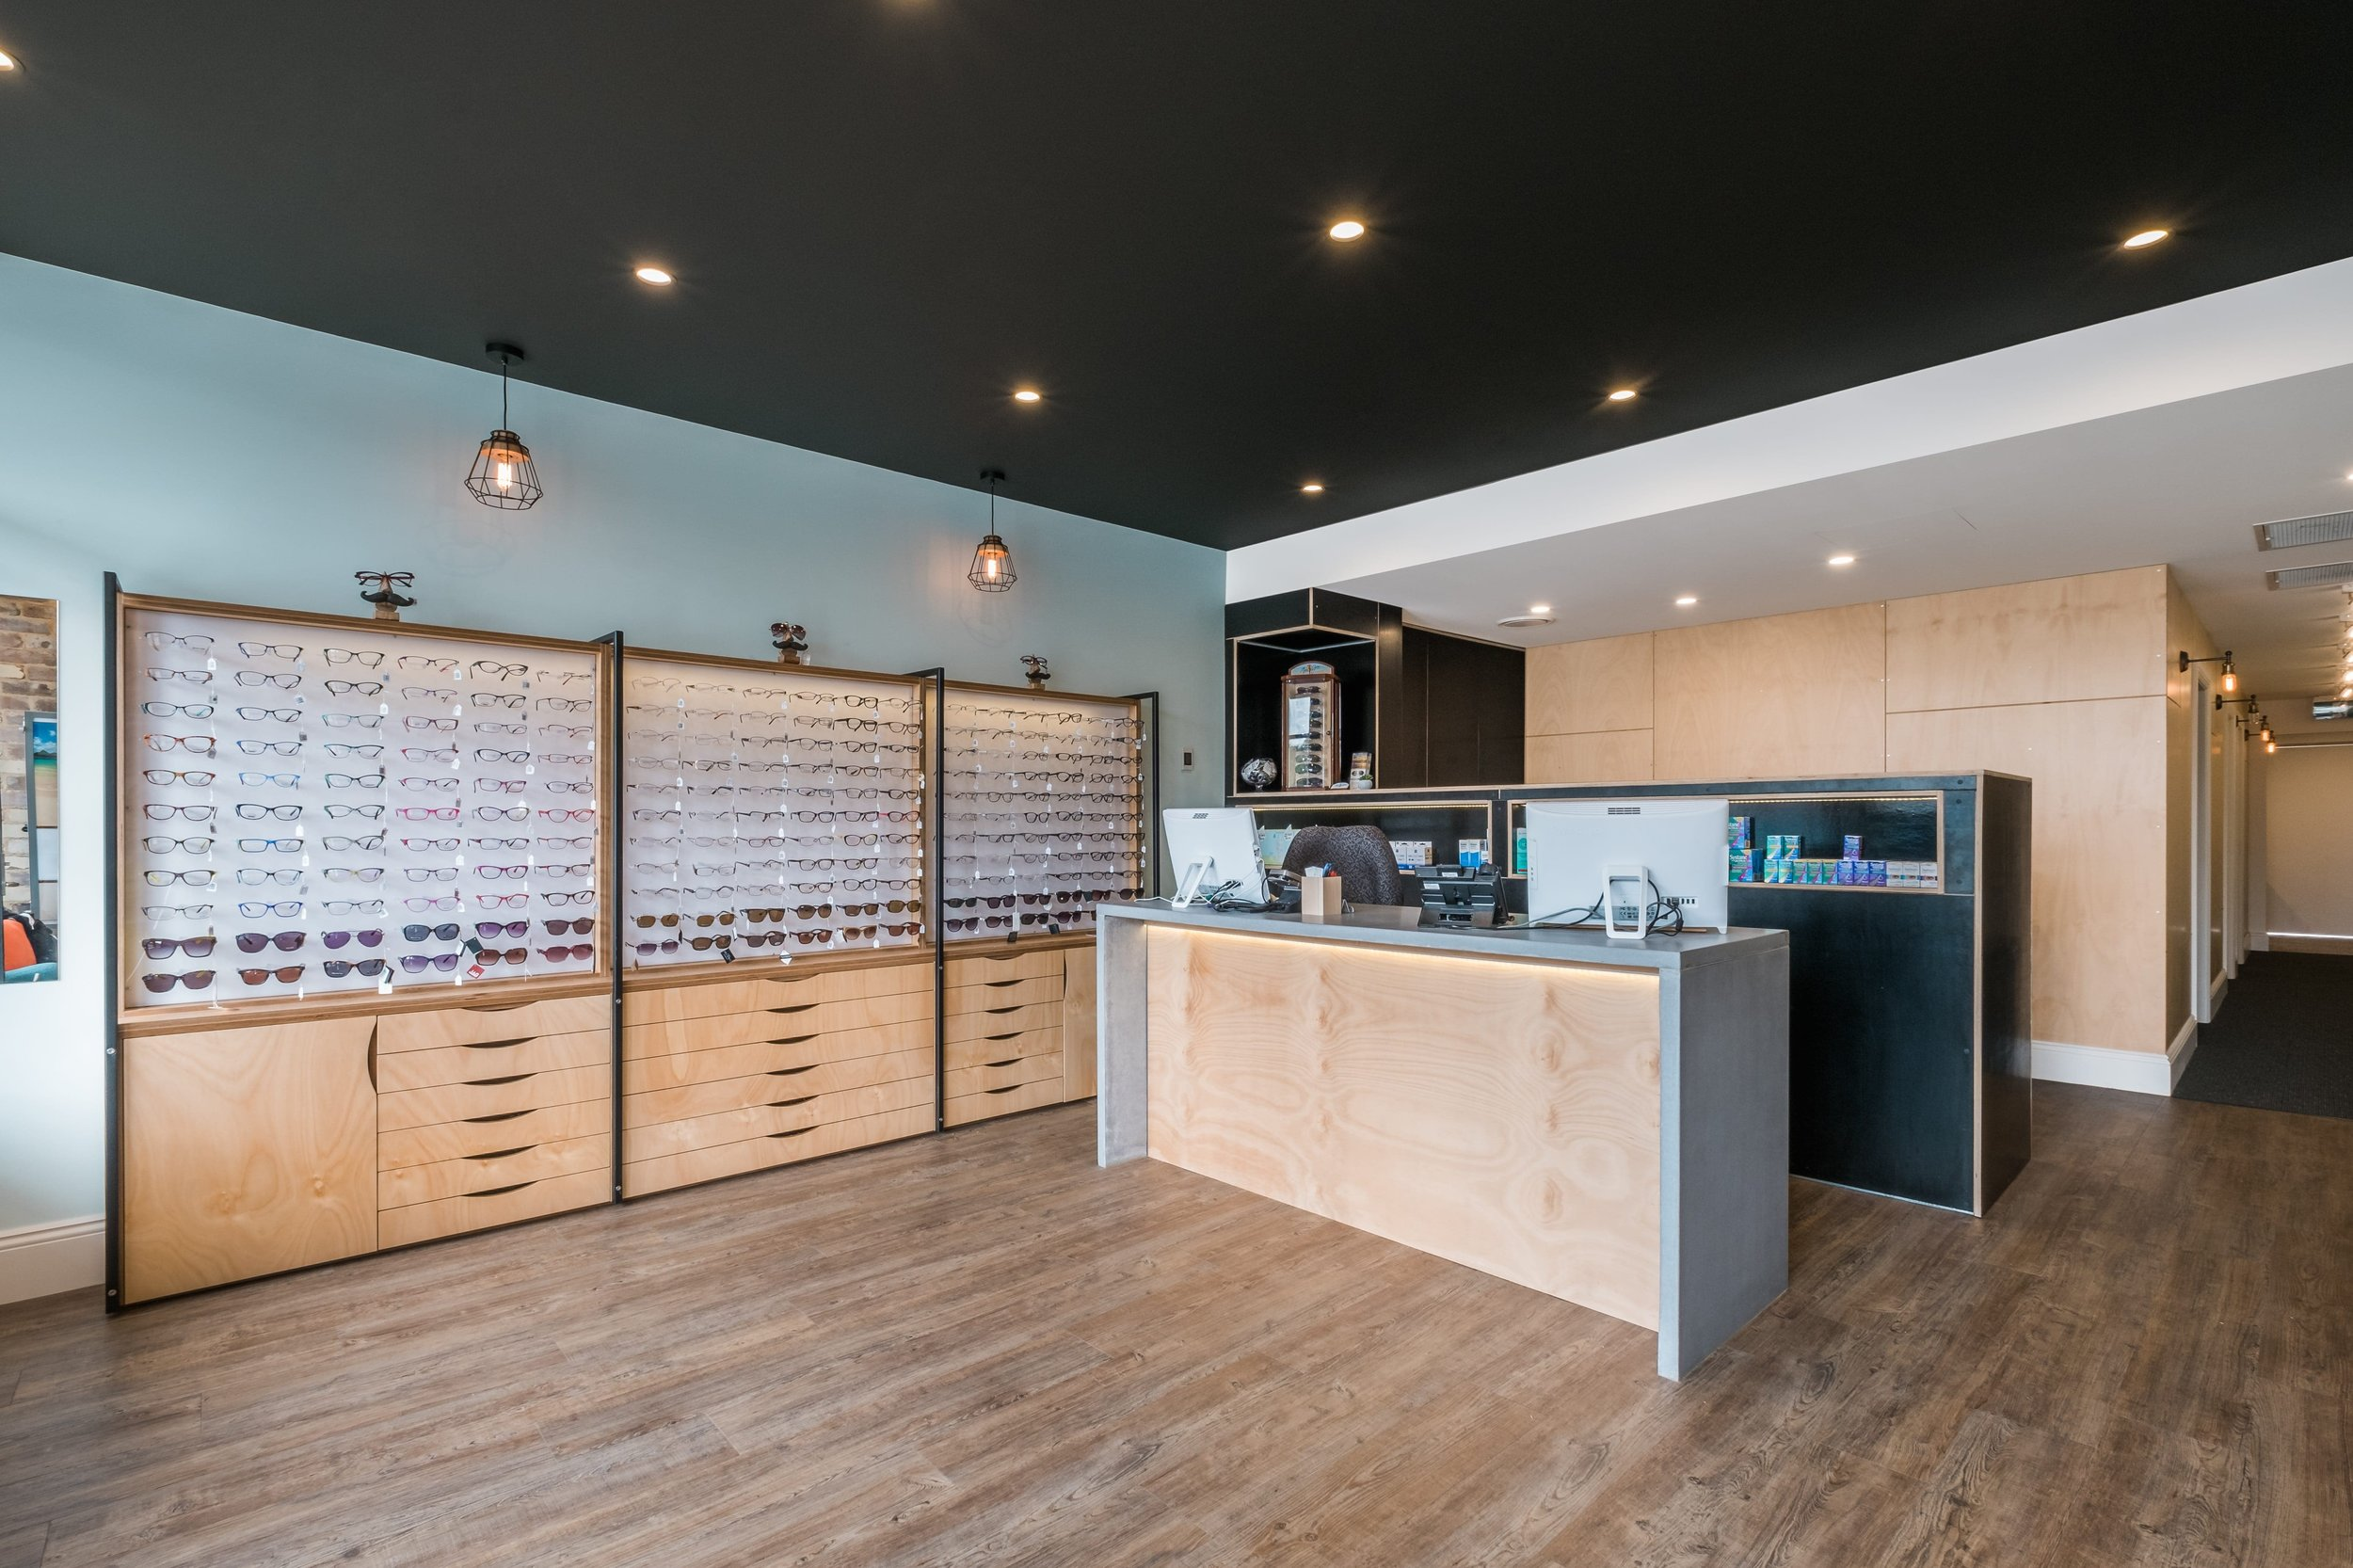 Retail Shop Interior Fitout Designer Optometry Industrial Theme Plywood Joinery.jpg